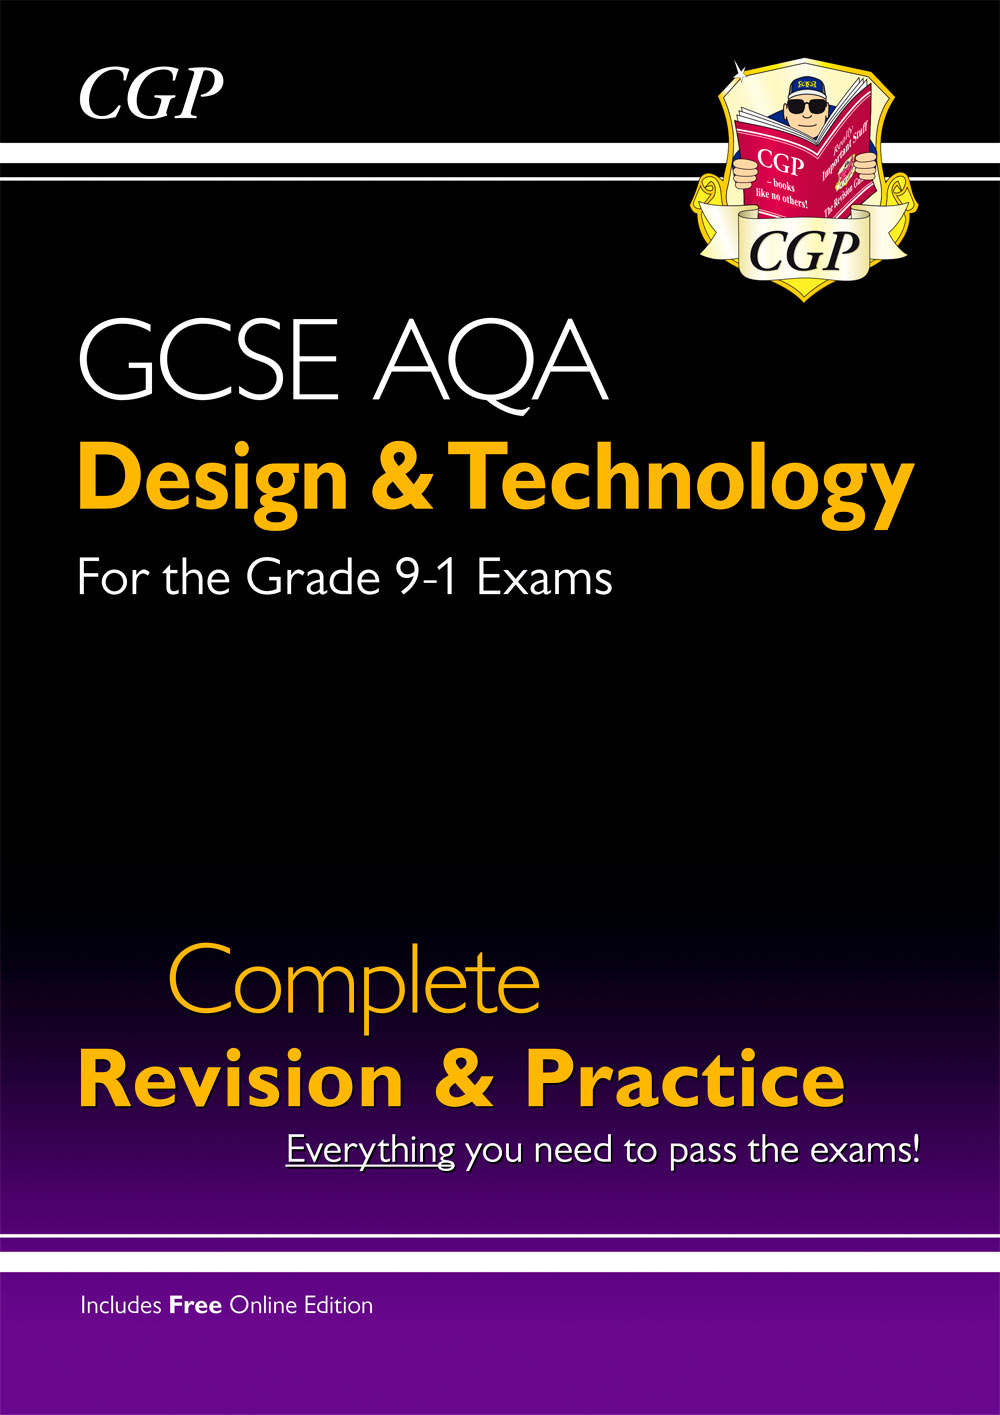 TAS41 - Grade 9-1 Design & Technology AQA Complete Revision & Practice (with Online Edition)